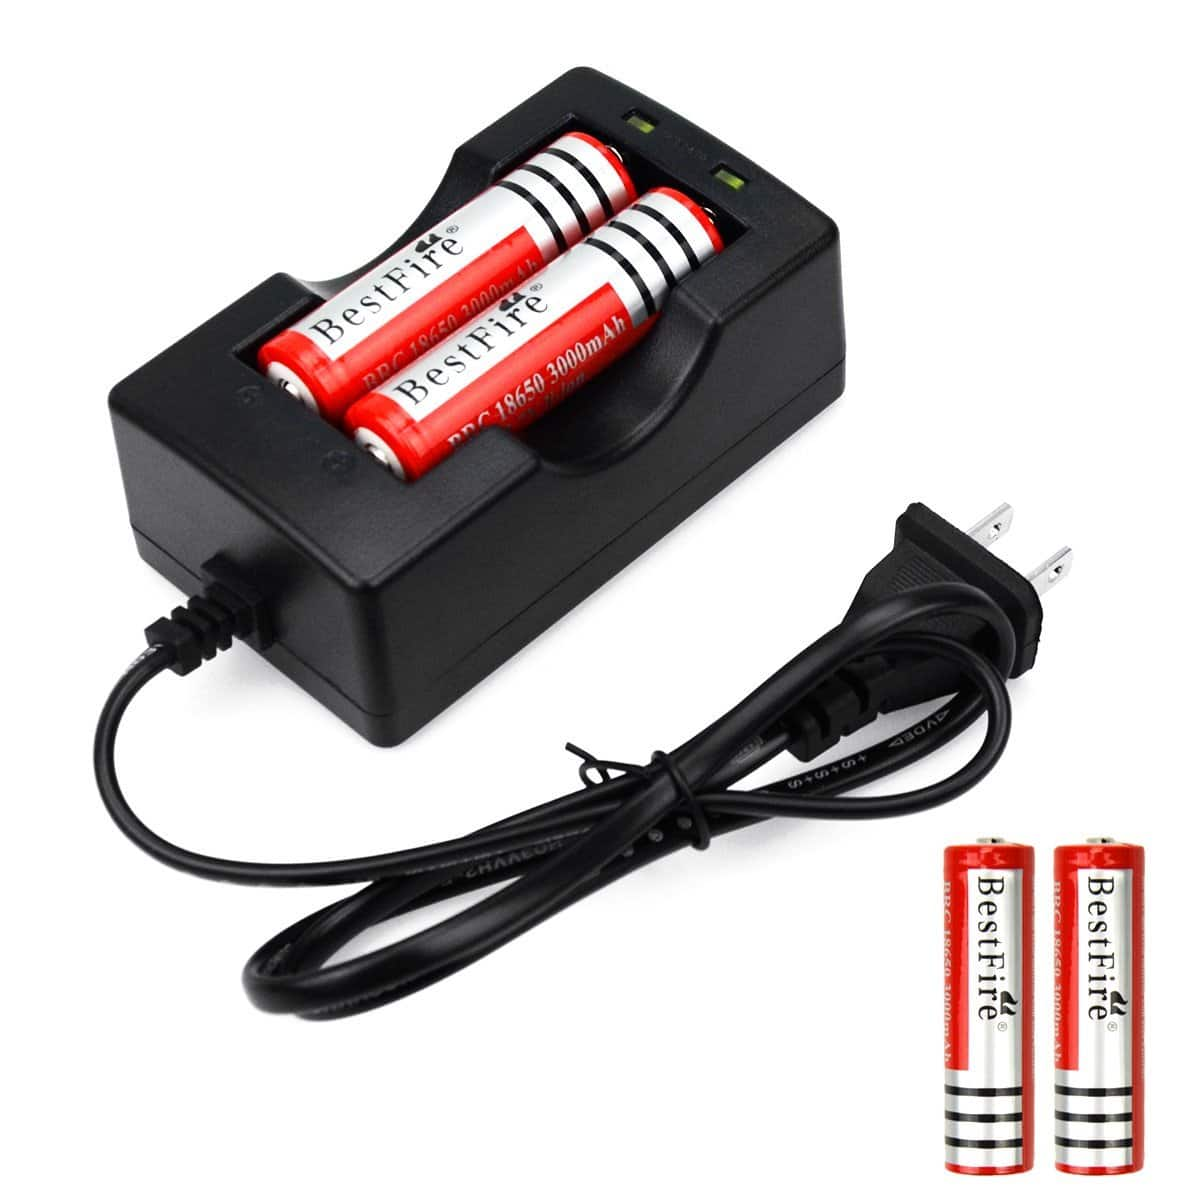 4x 18650 3.7V Rechargeable Low Self-discharge Li-ion Battery With Charger Combo @Amazon $7